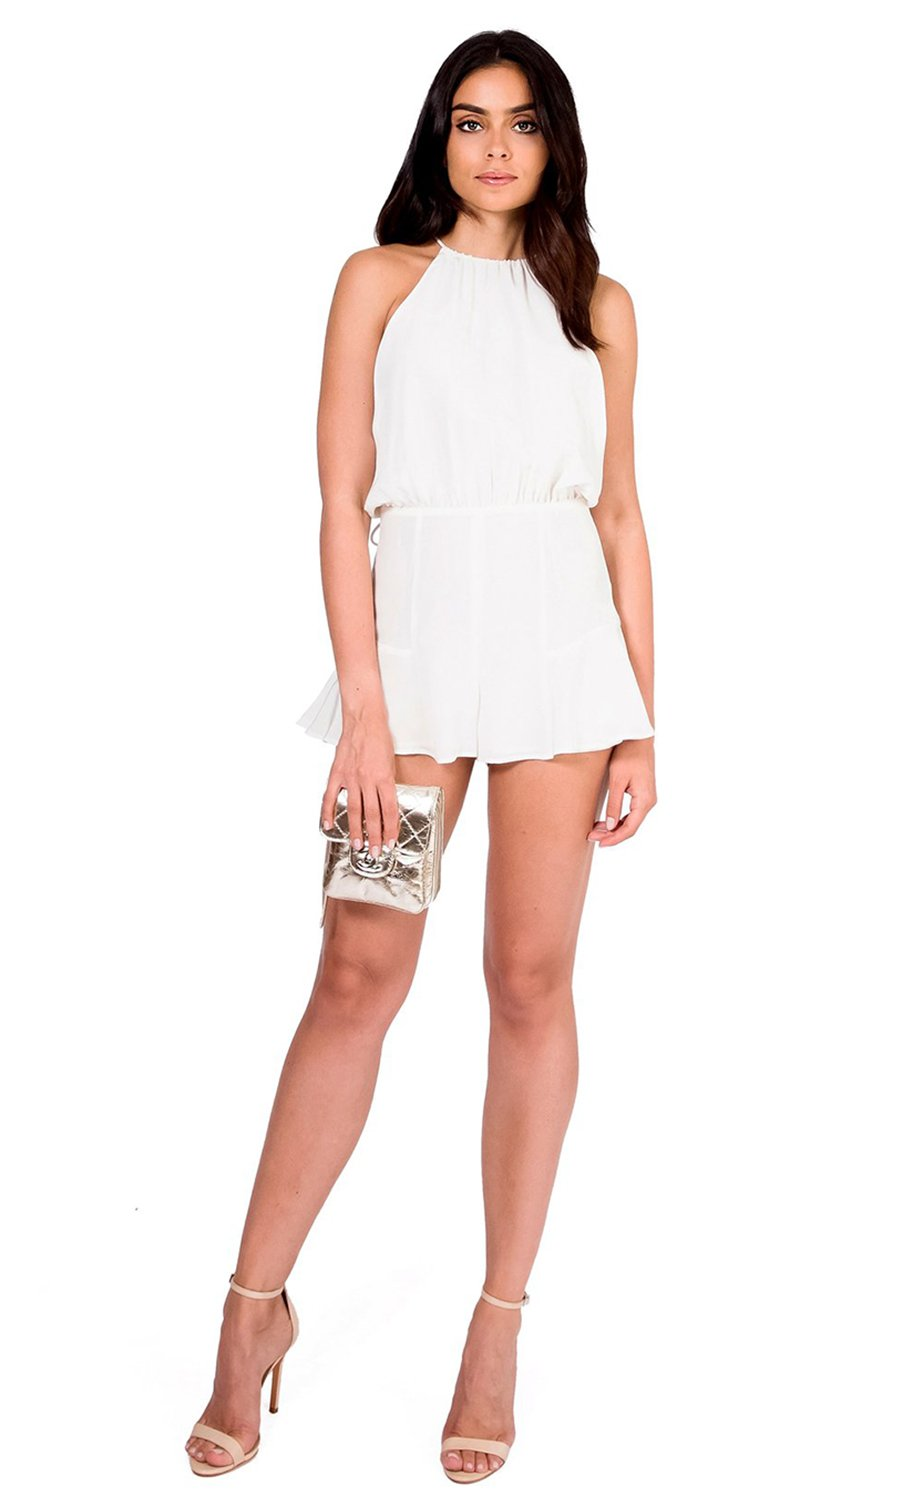 Jennifer Hope Clothing Mimi Halter Silk Romper in White